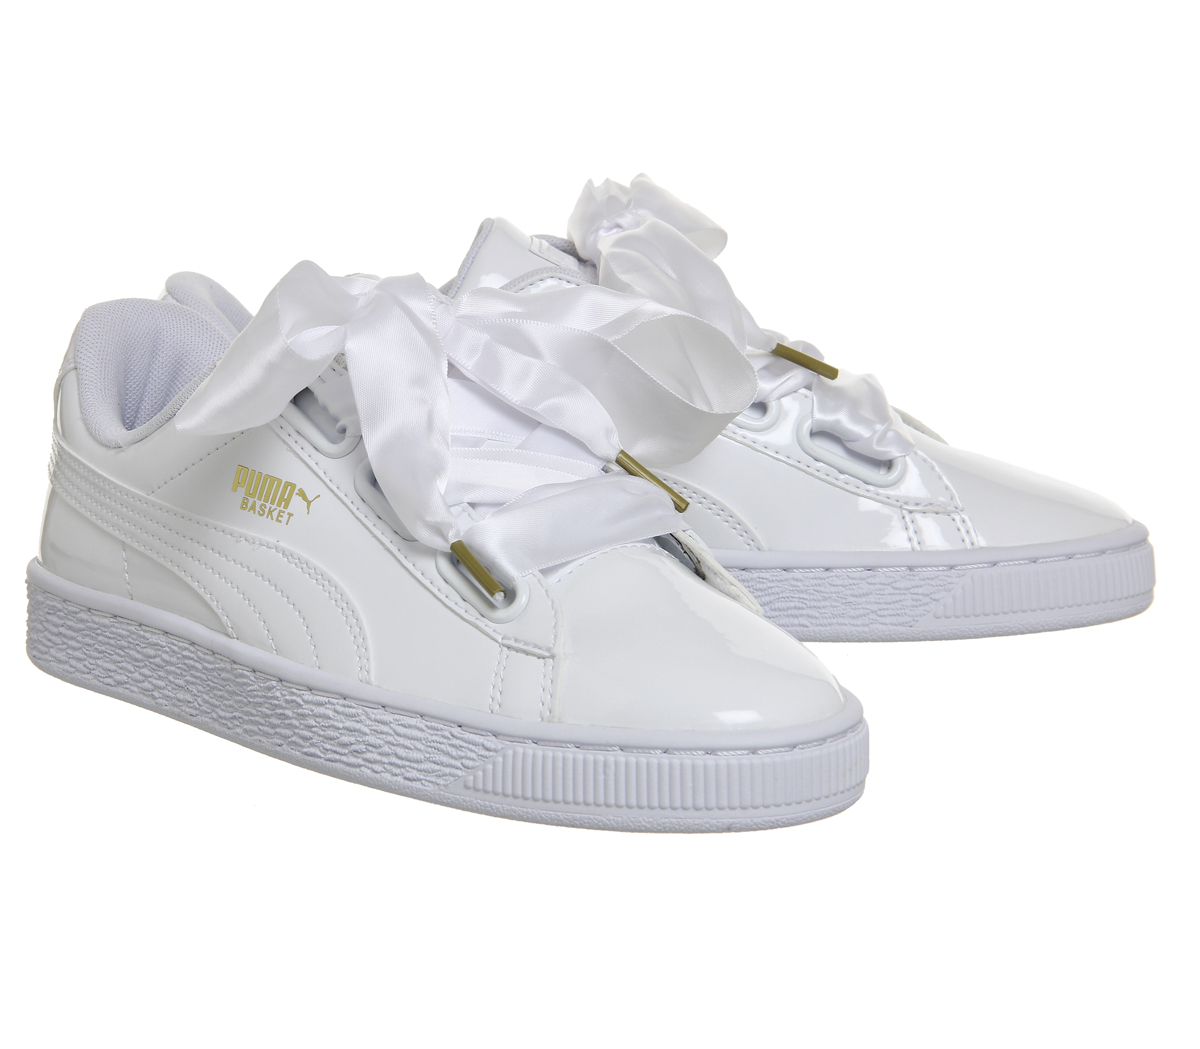 Womens Puma Basket Heart Trainers WHITE PATENT Trainers ...